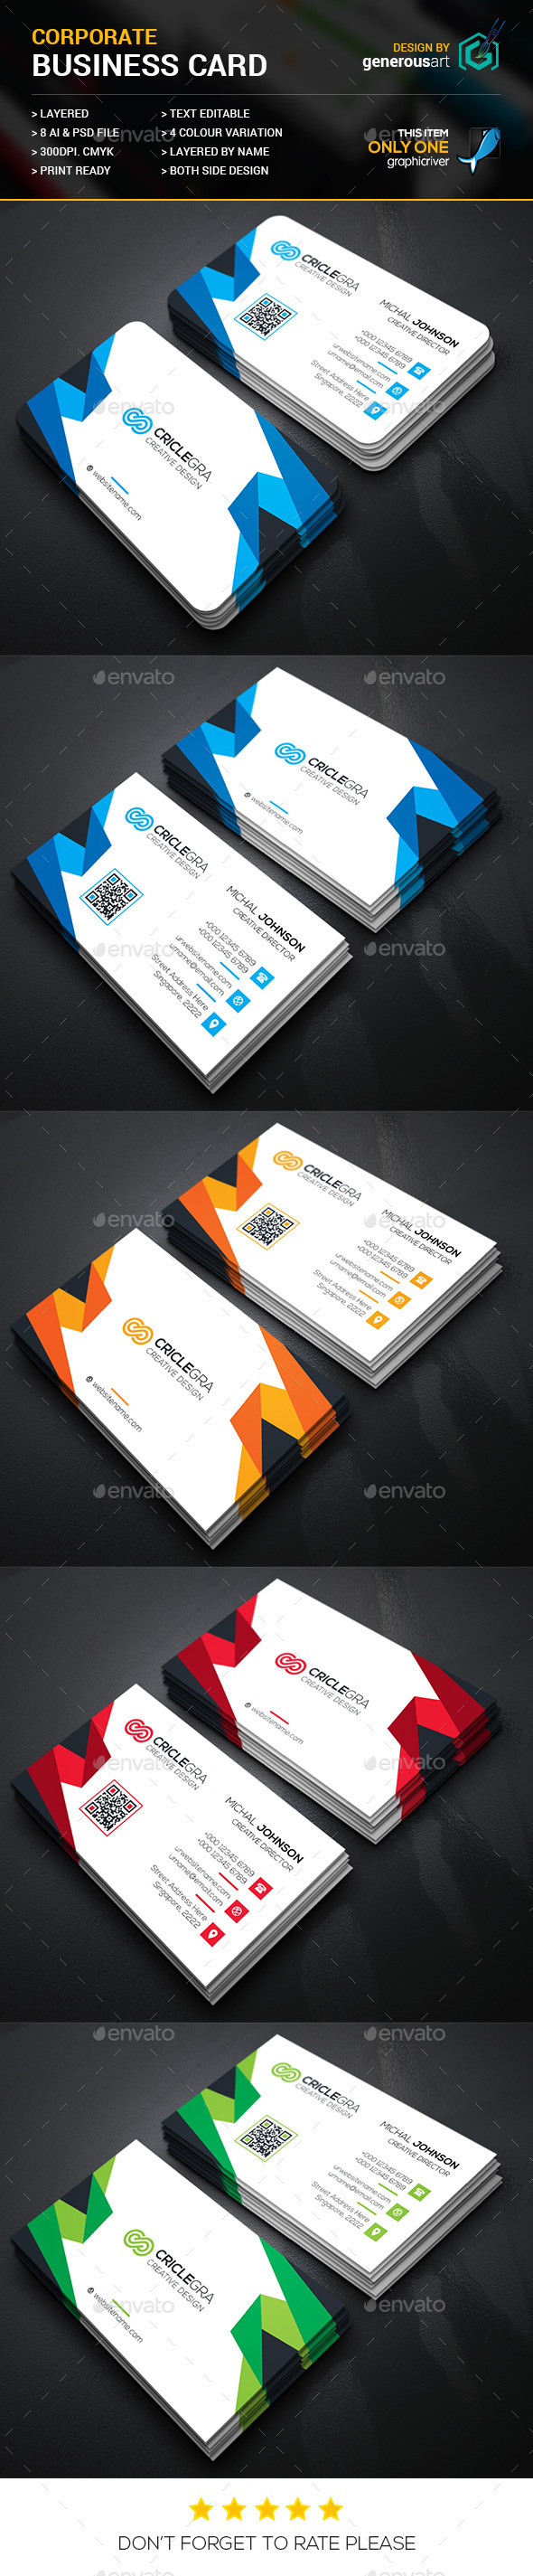 Criclegra Business Card - Corporate Business Cards